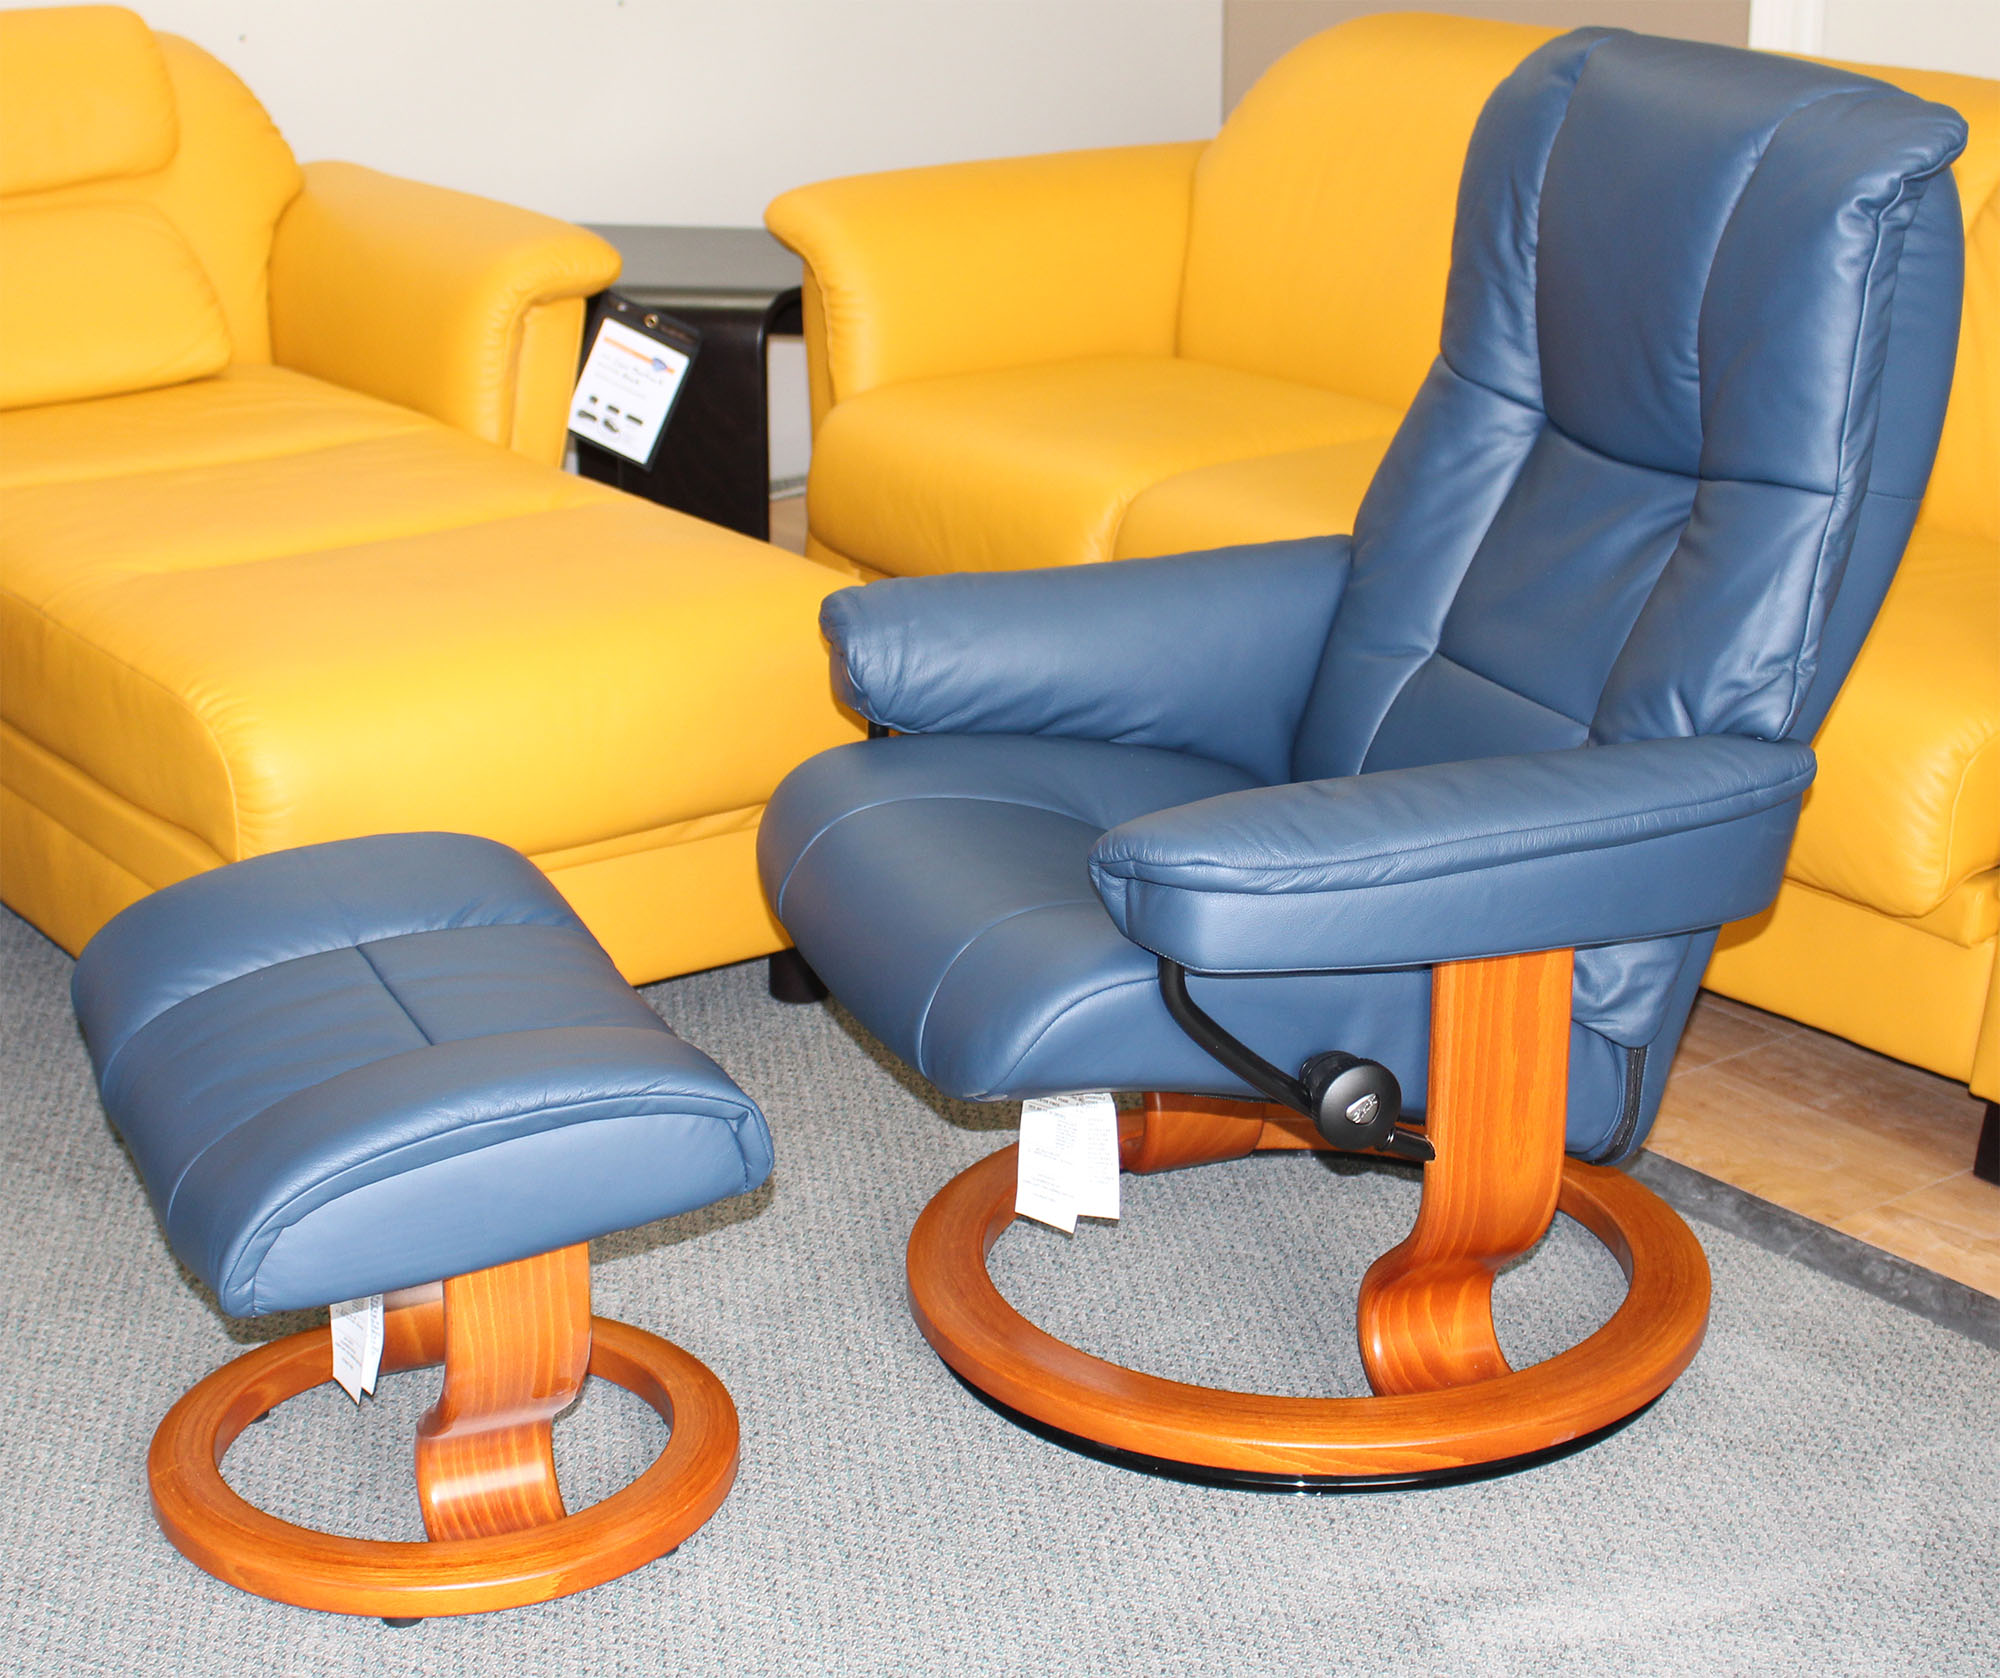 Leather Recliner Chair With Ottoman Stressless Kensington Large Mayfair Paloma Oxford Blue Leather Recliner Chair And Ottoman By Ekornes